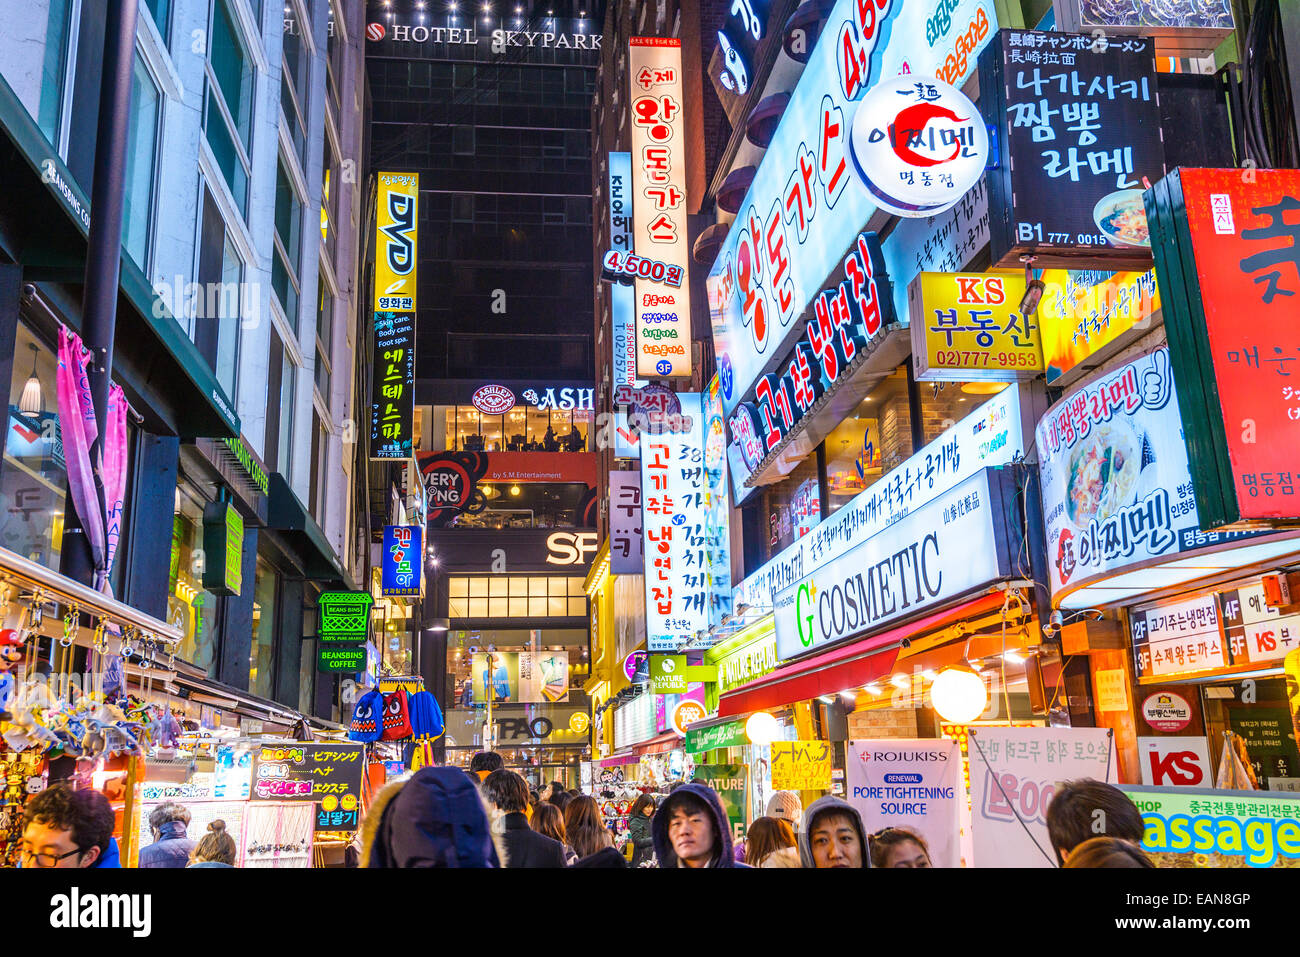 Myeong-Dong district at night in Seoul. The location is the premiere district for shopping in the city. - Stock Image